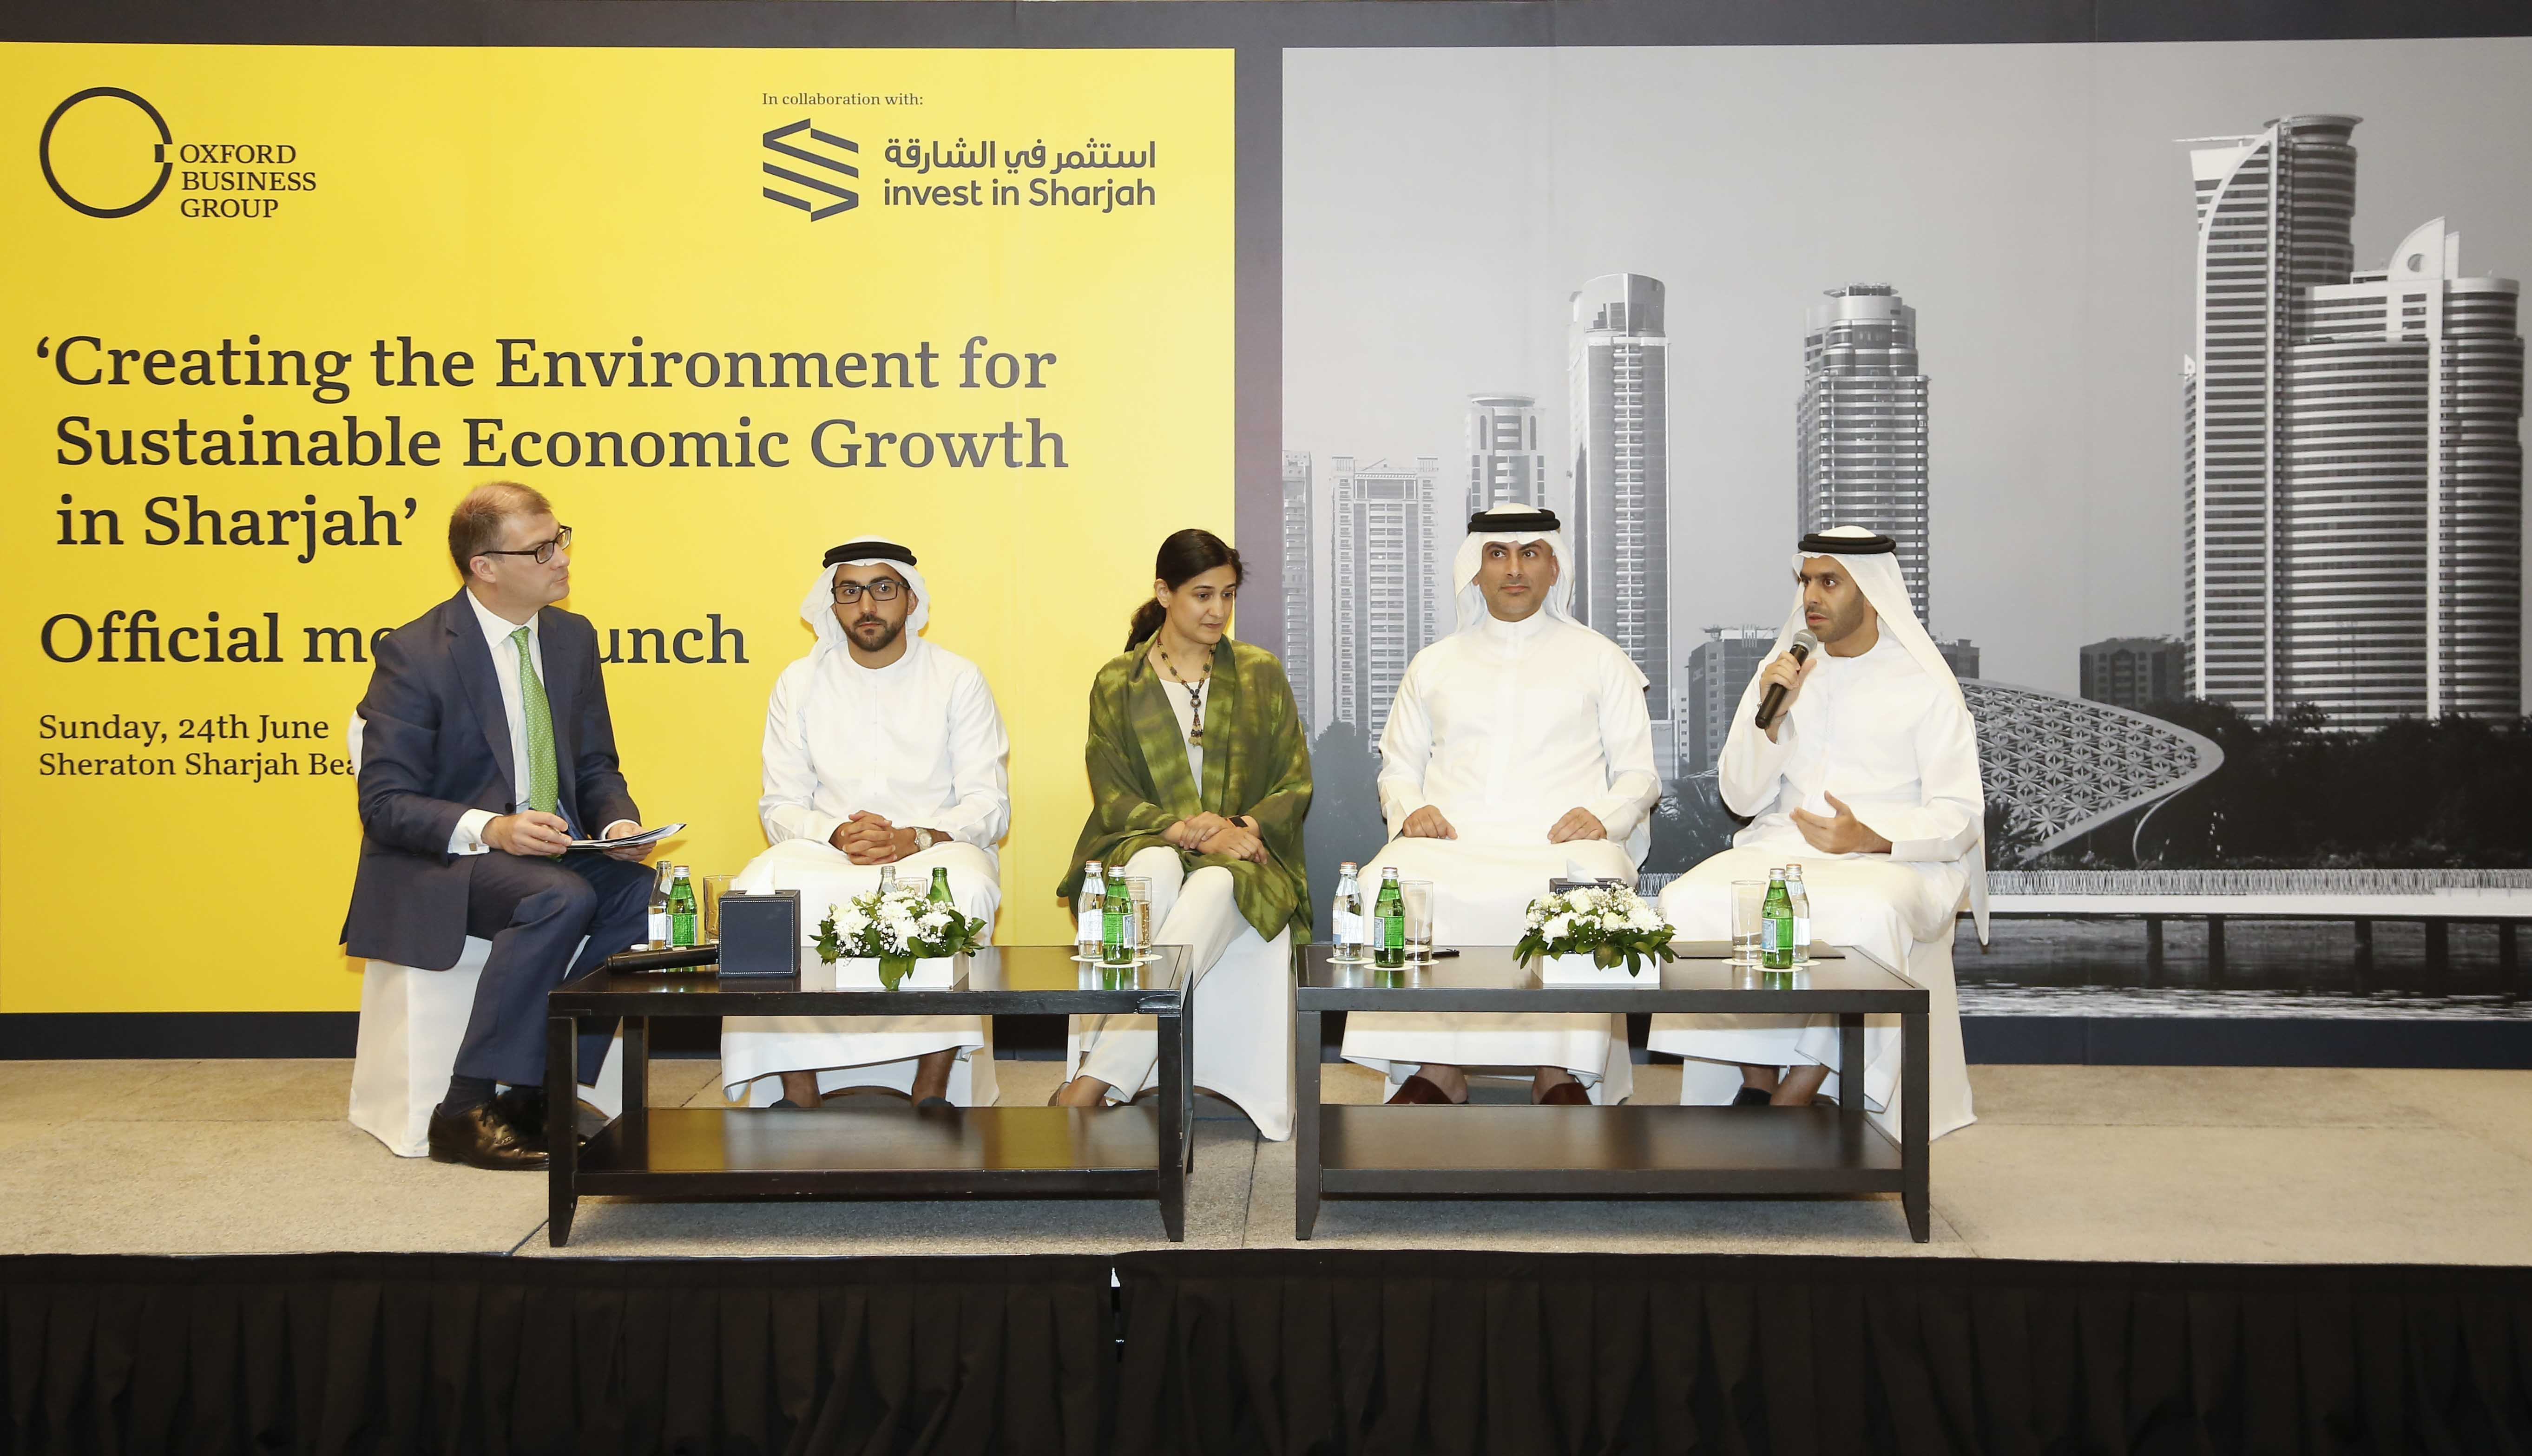 oxford business group issues report on sharjah's economic diversification3